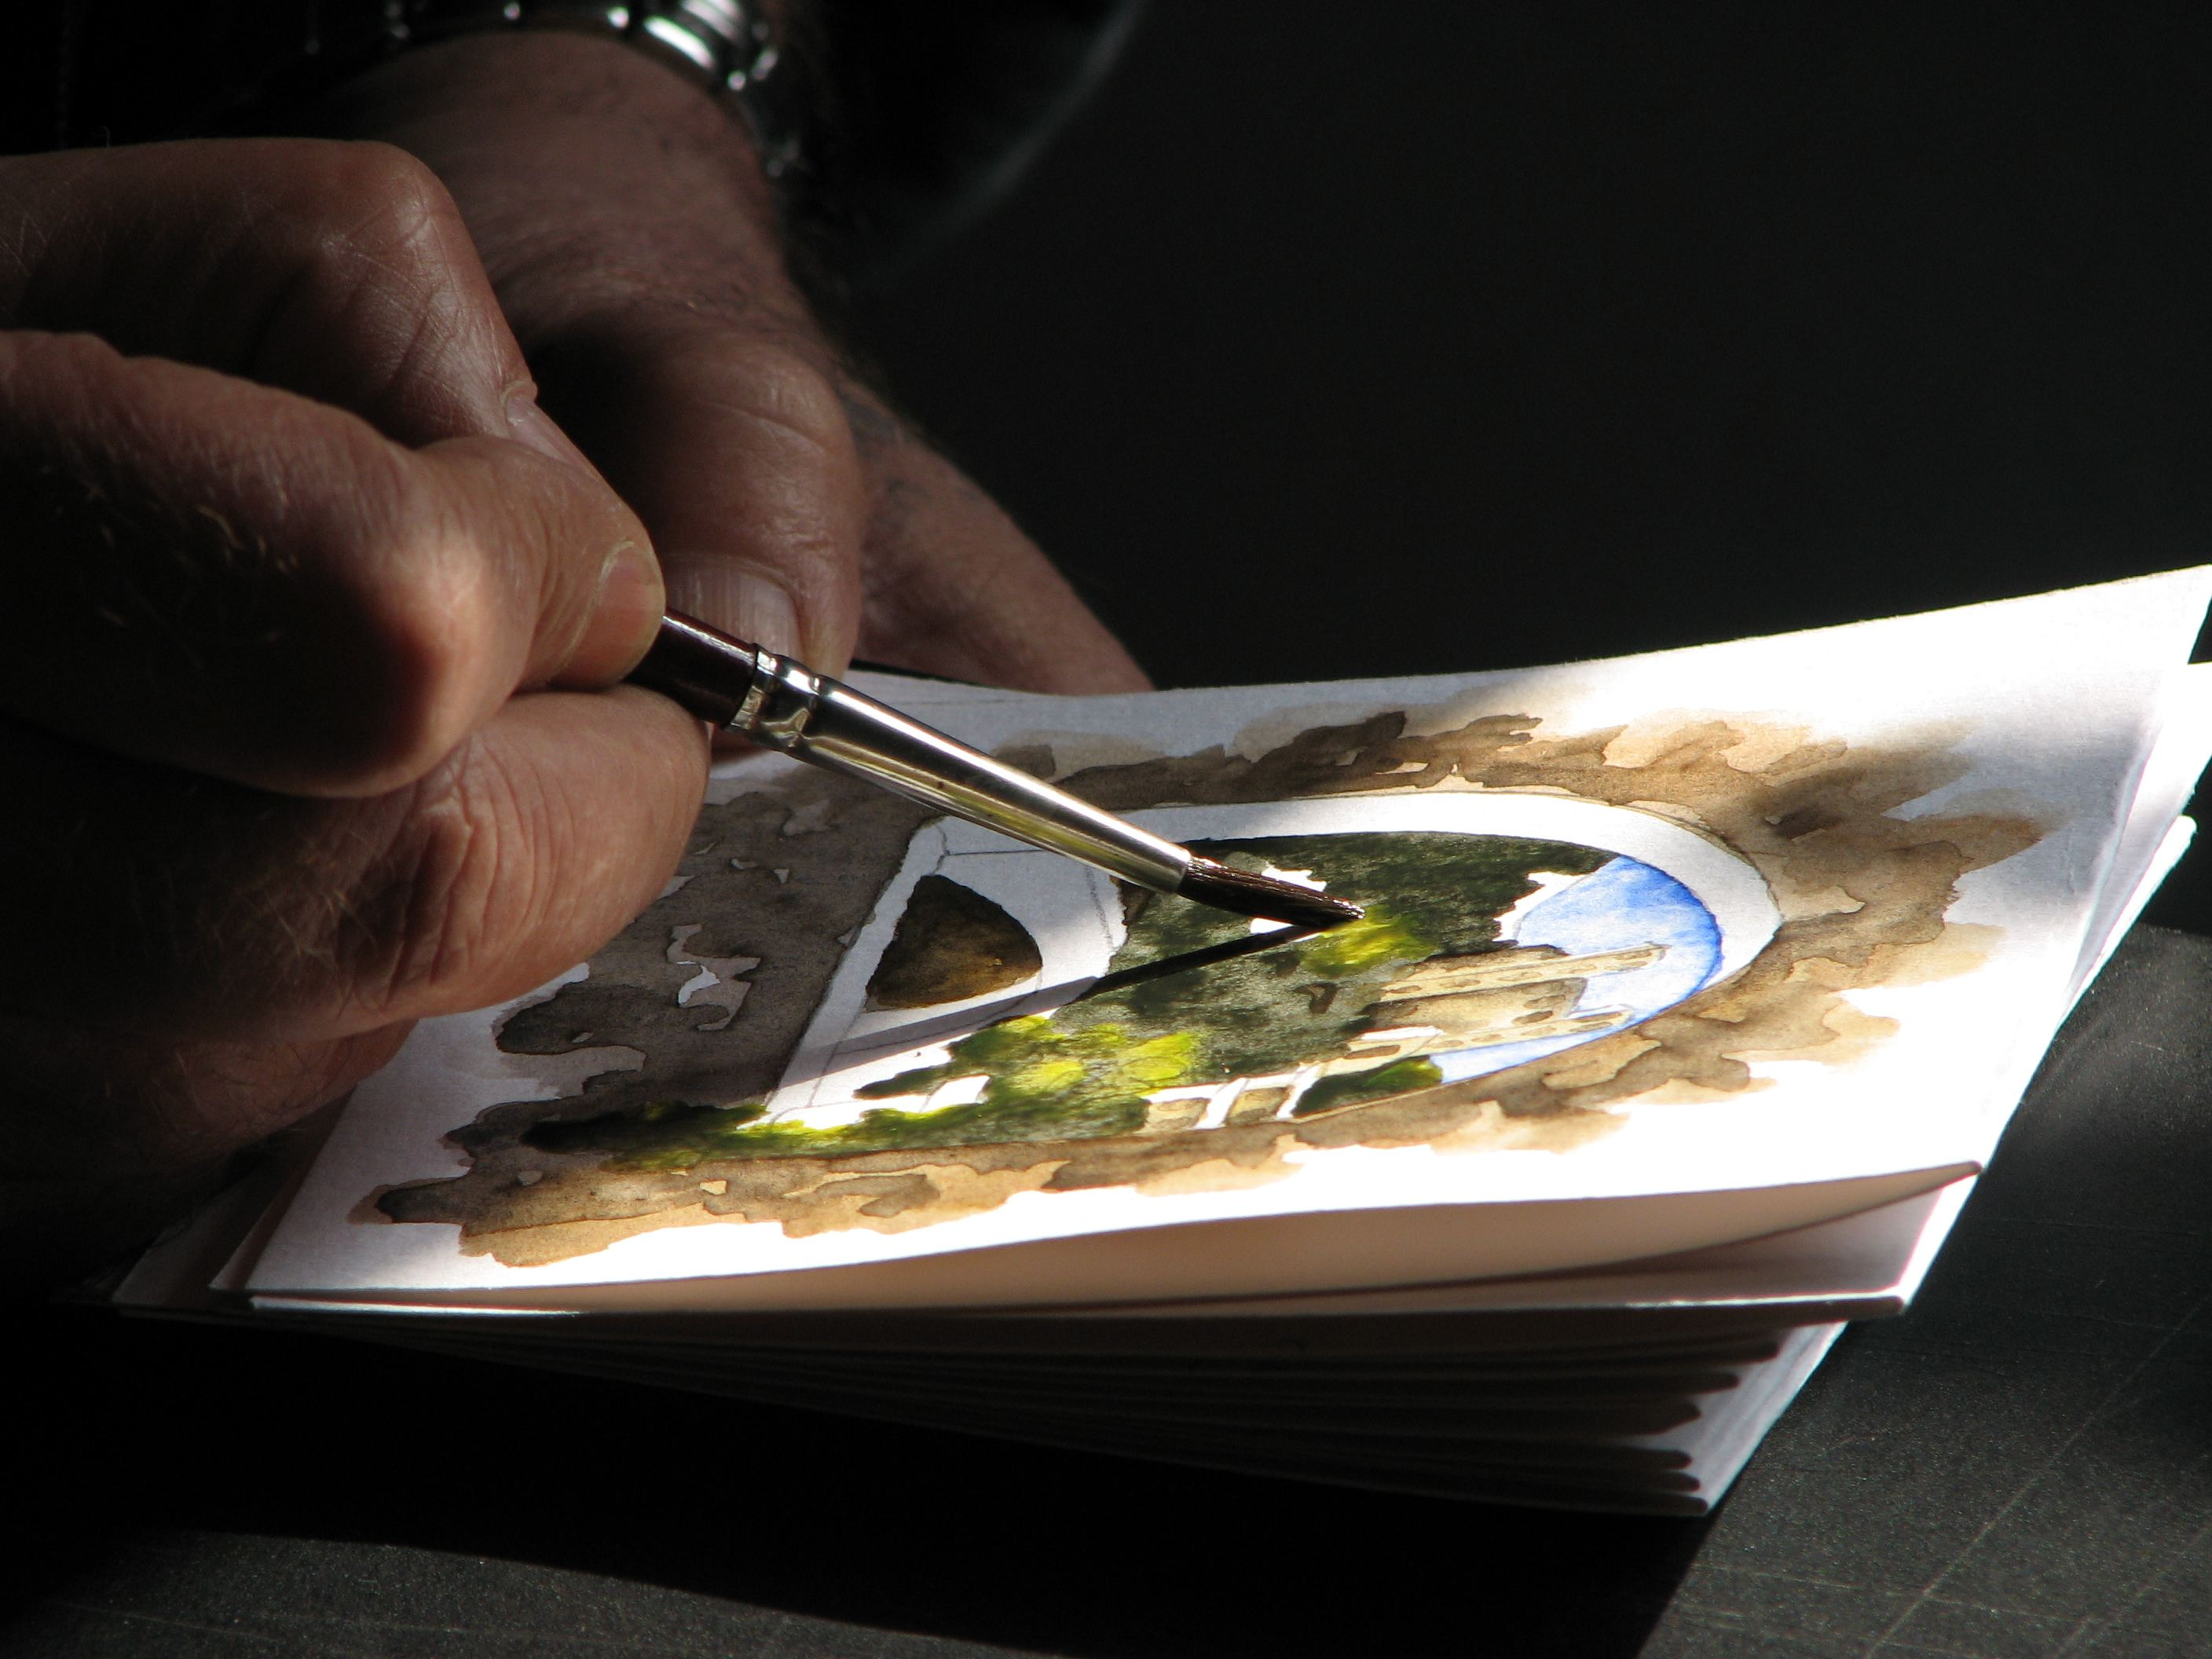 Watercolour workshops are being held in the Fish Creek courtyard